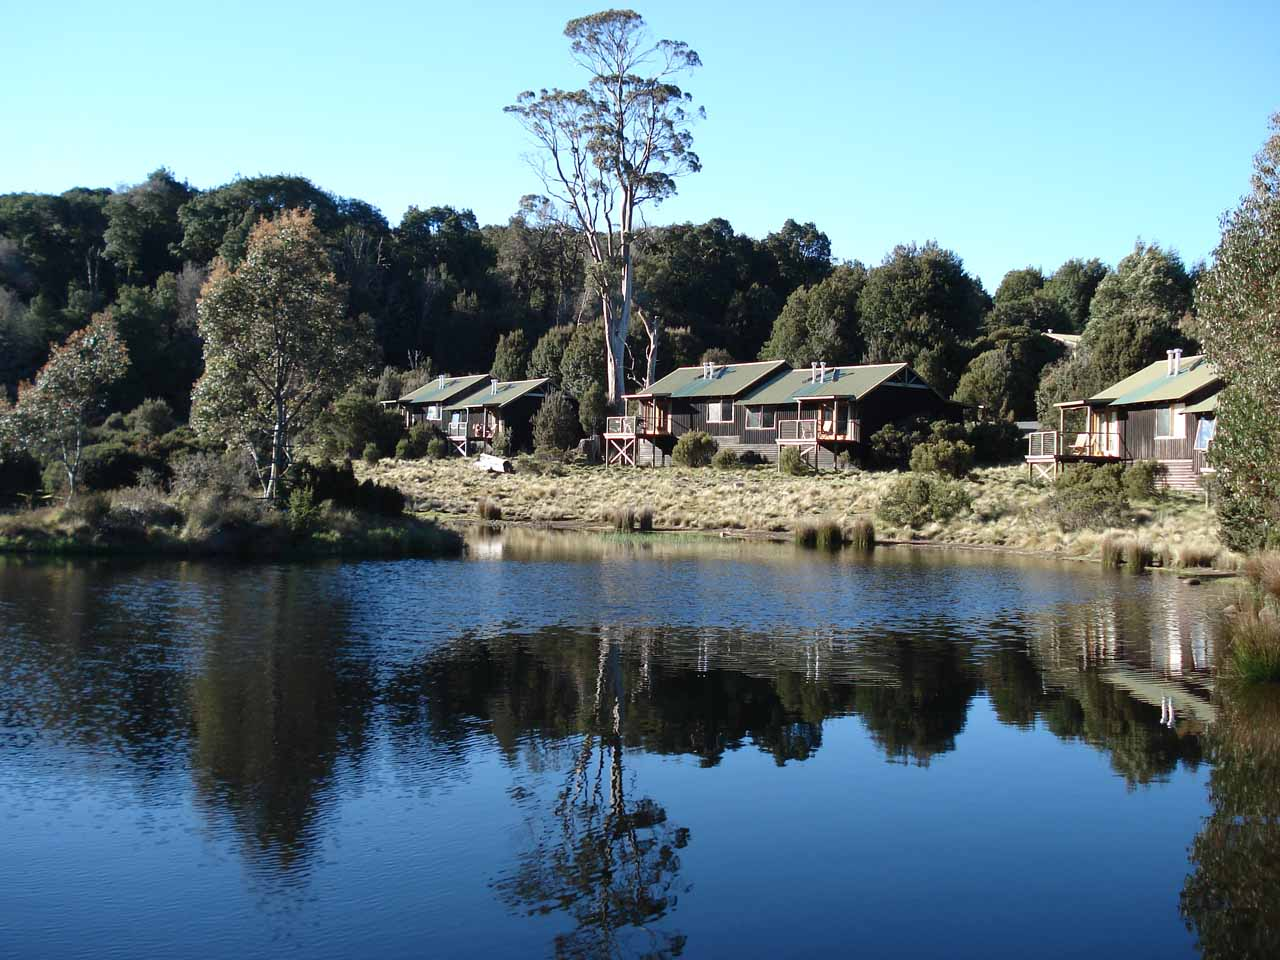 Gorgeous view of Cradle Mountain and Dove Lake in nearly picture perfect weather